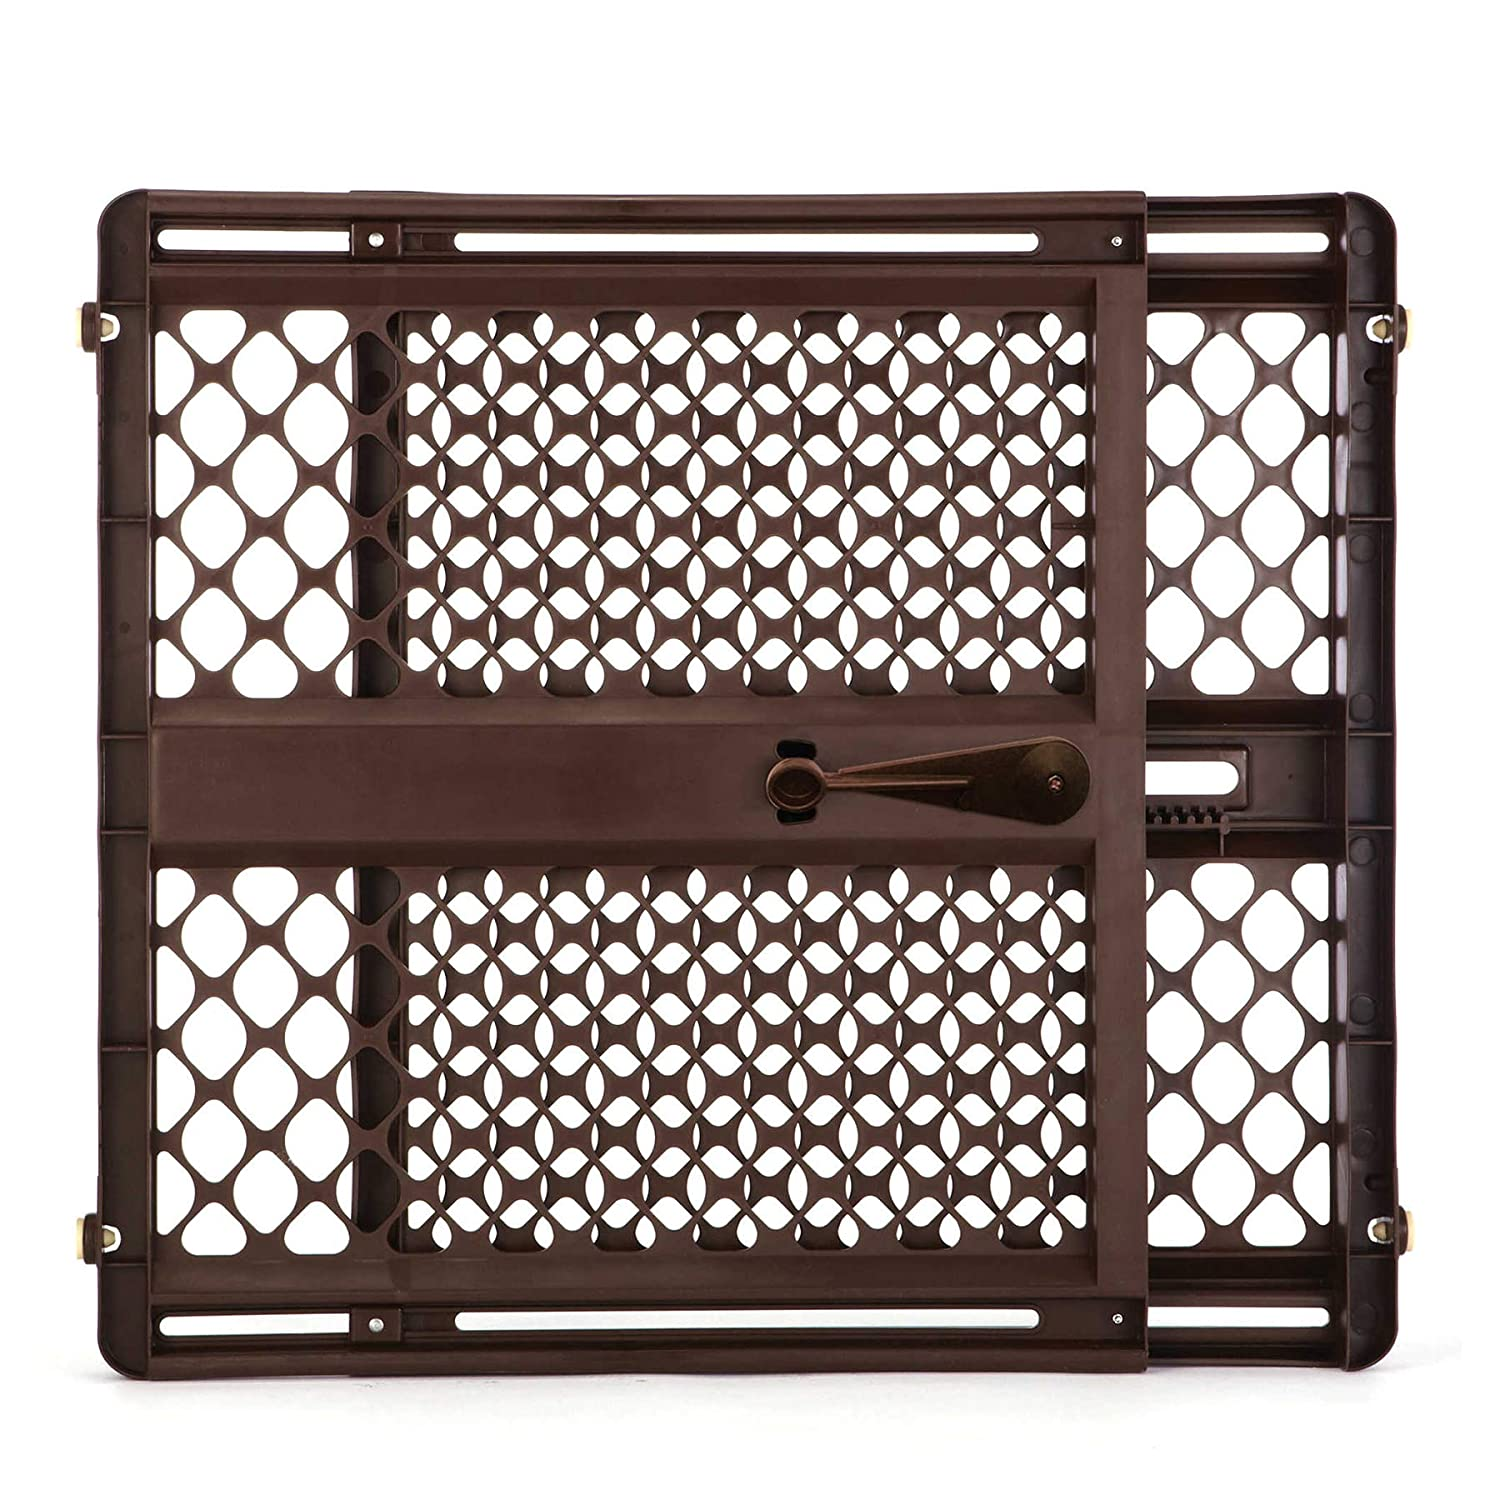 North States Mypet 8P8735 Pet Gate Essential, Brown